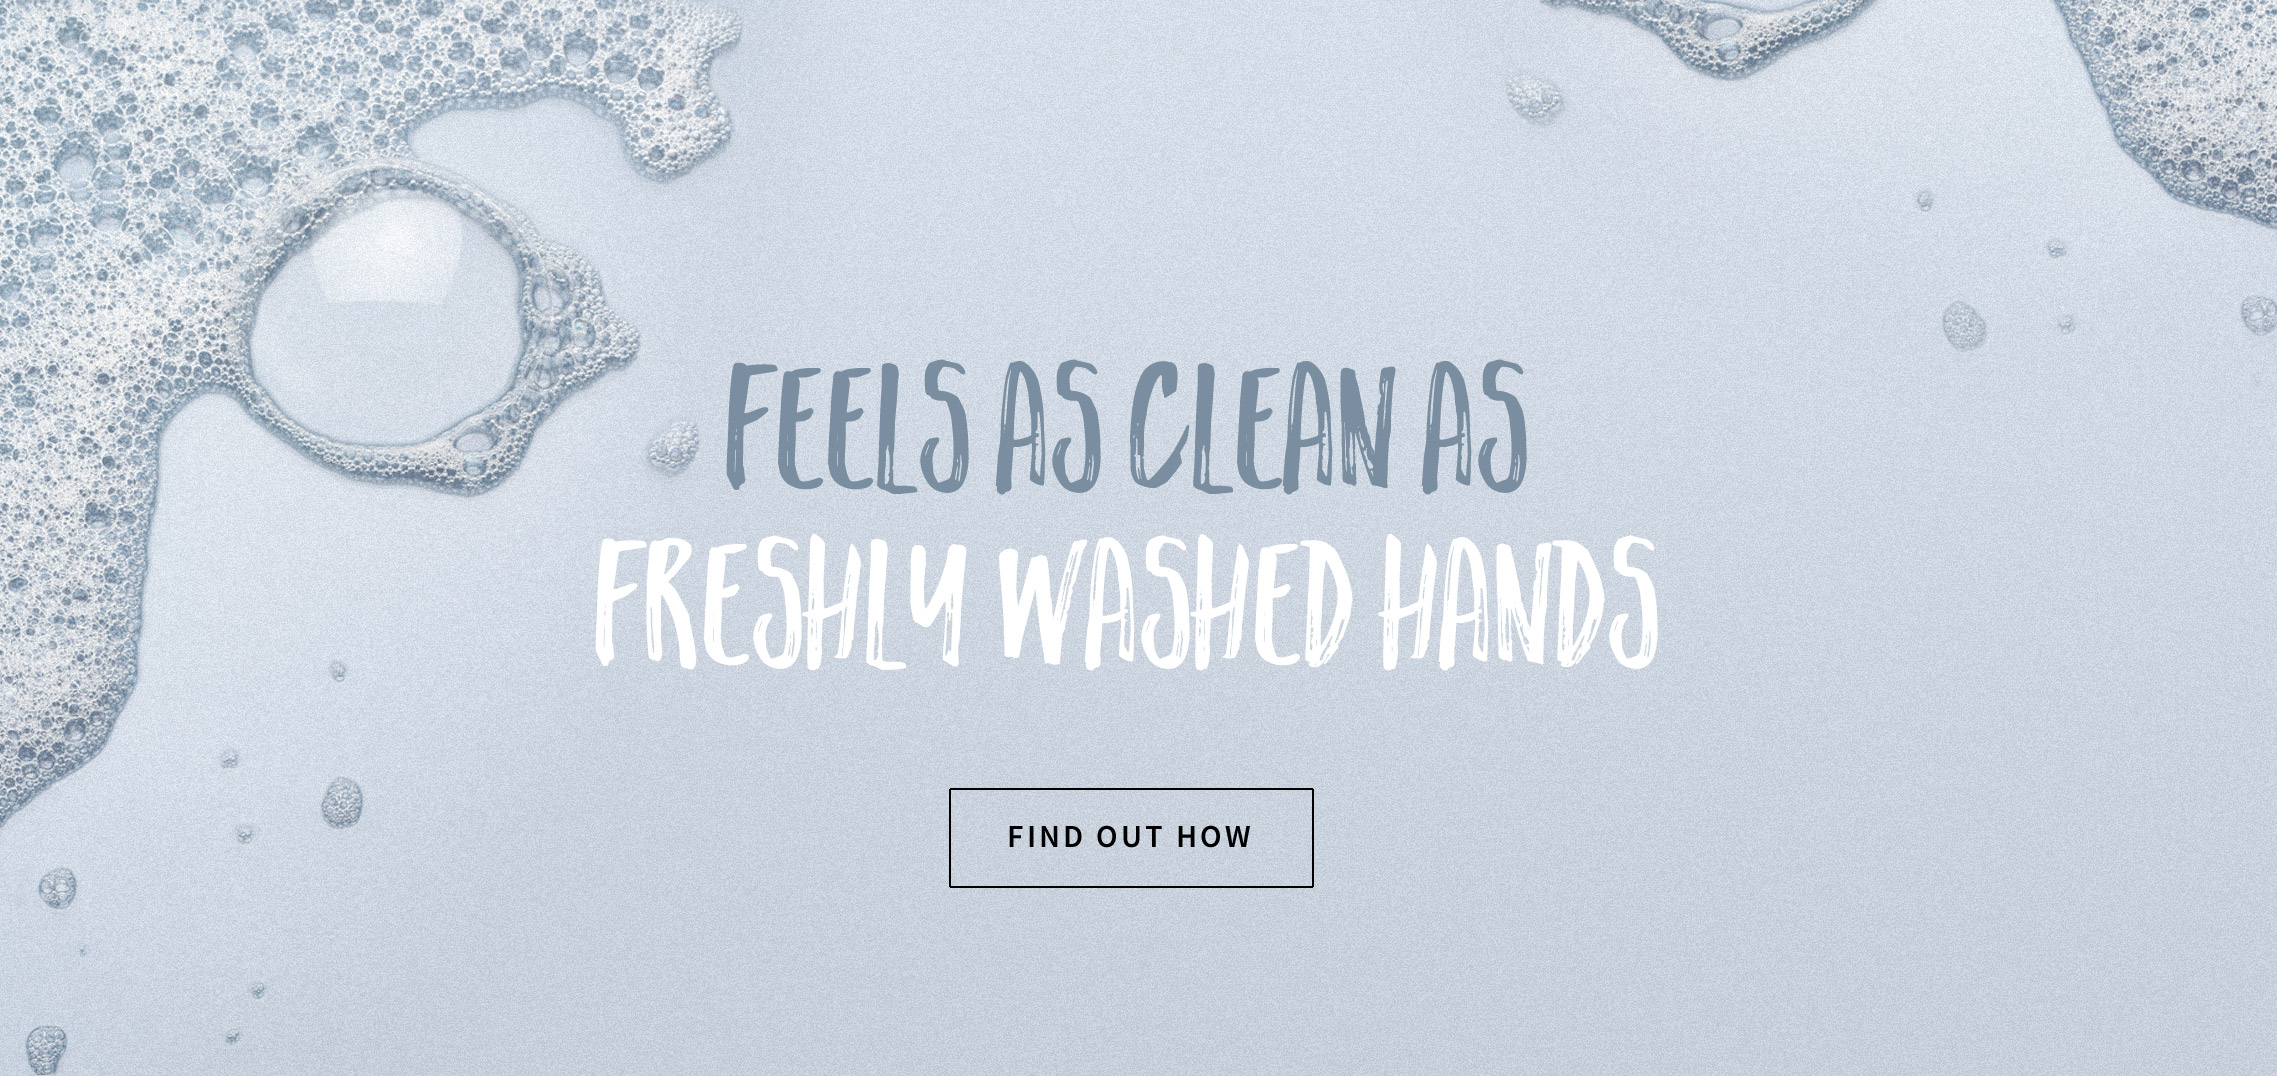 Feel as clean as freshly washed hands